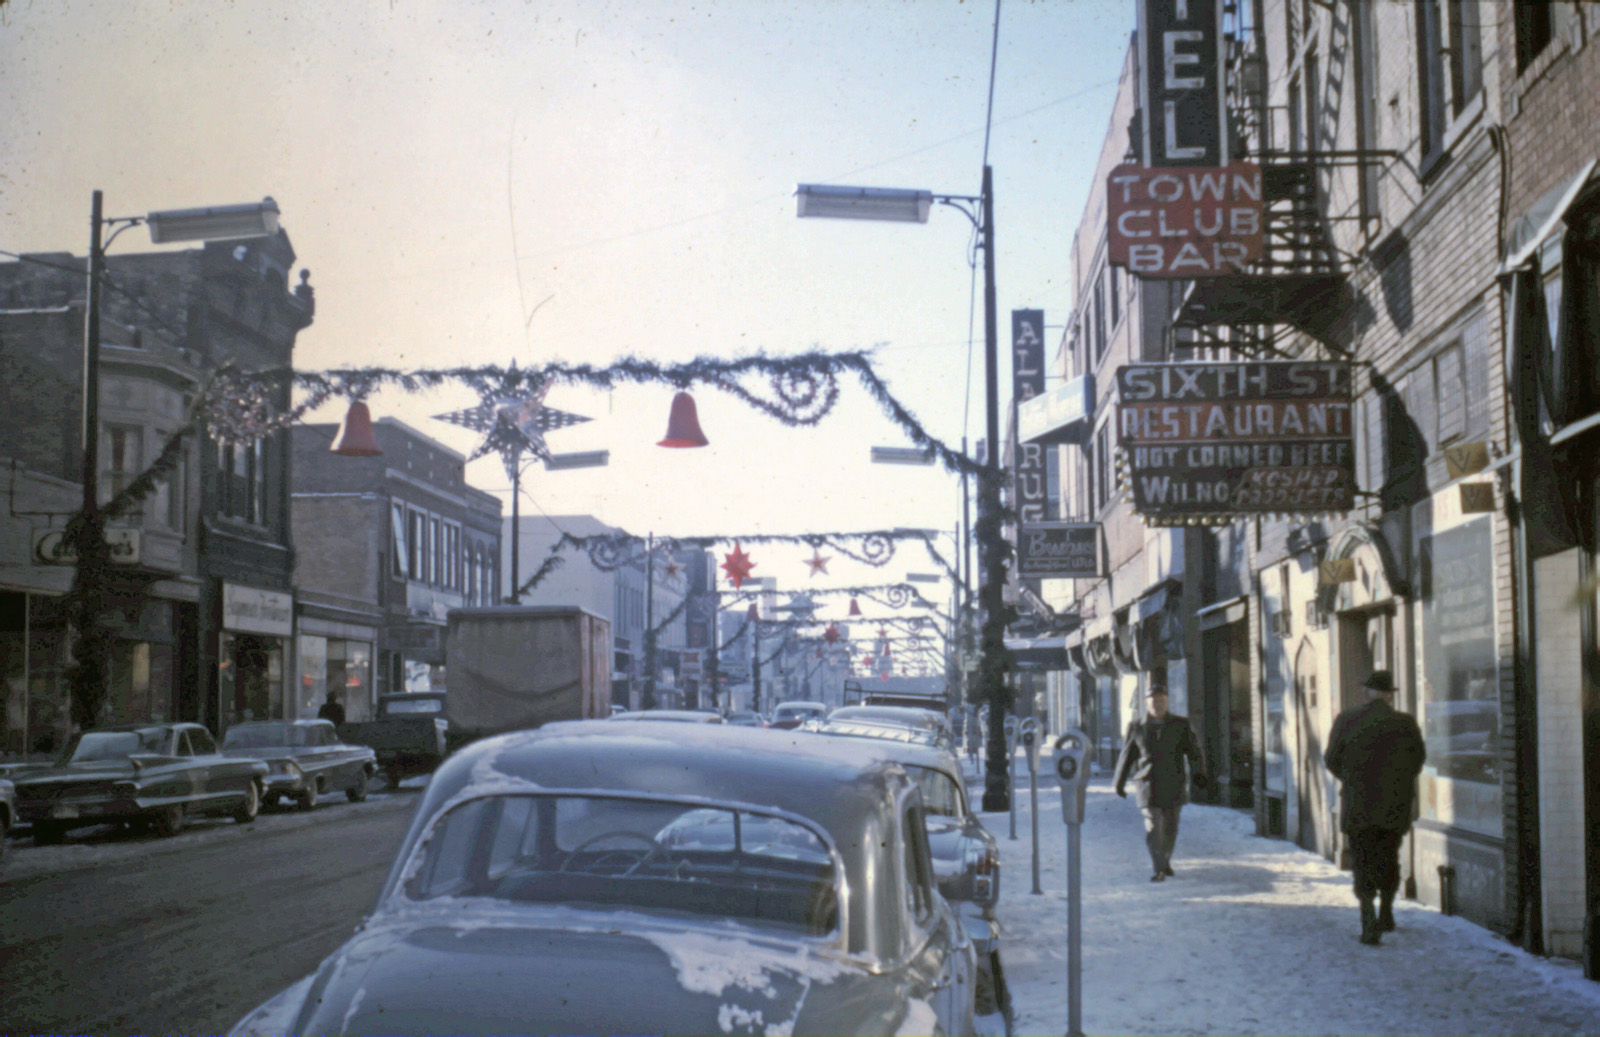 Holiday shopping in Downtown Racine, 1962. Image credit www.RacineCounty.net  click here.